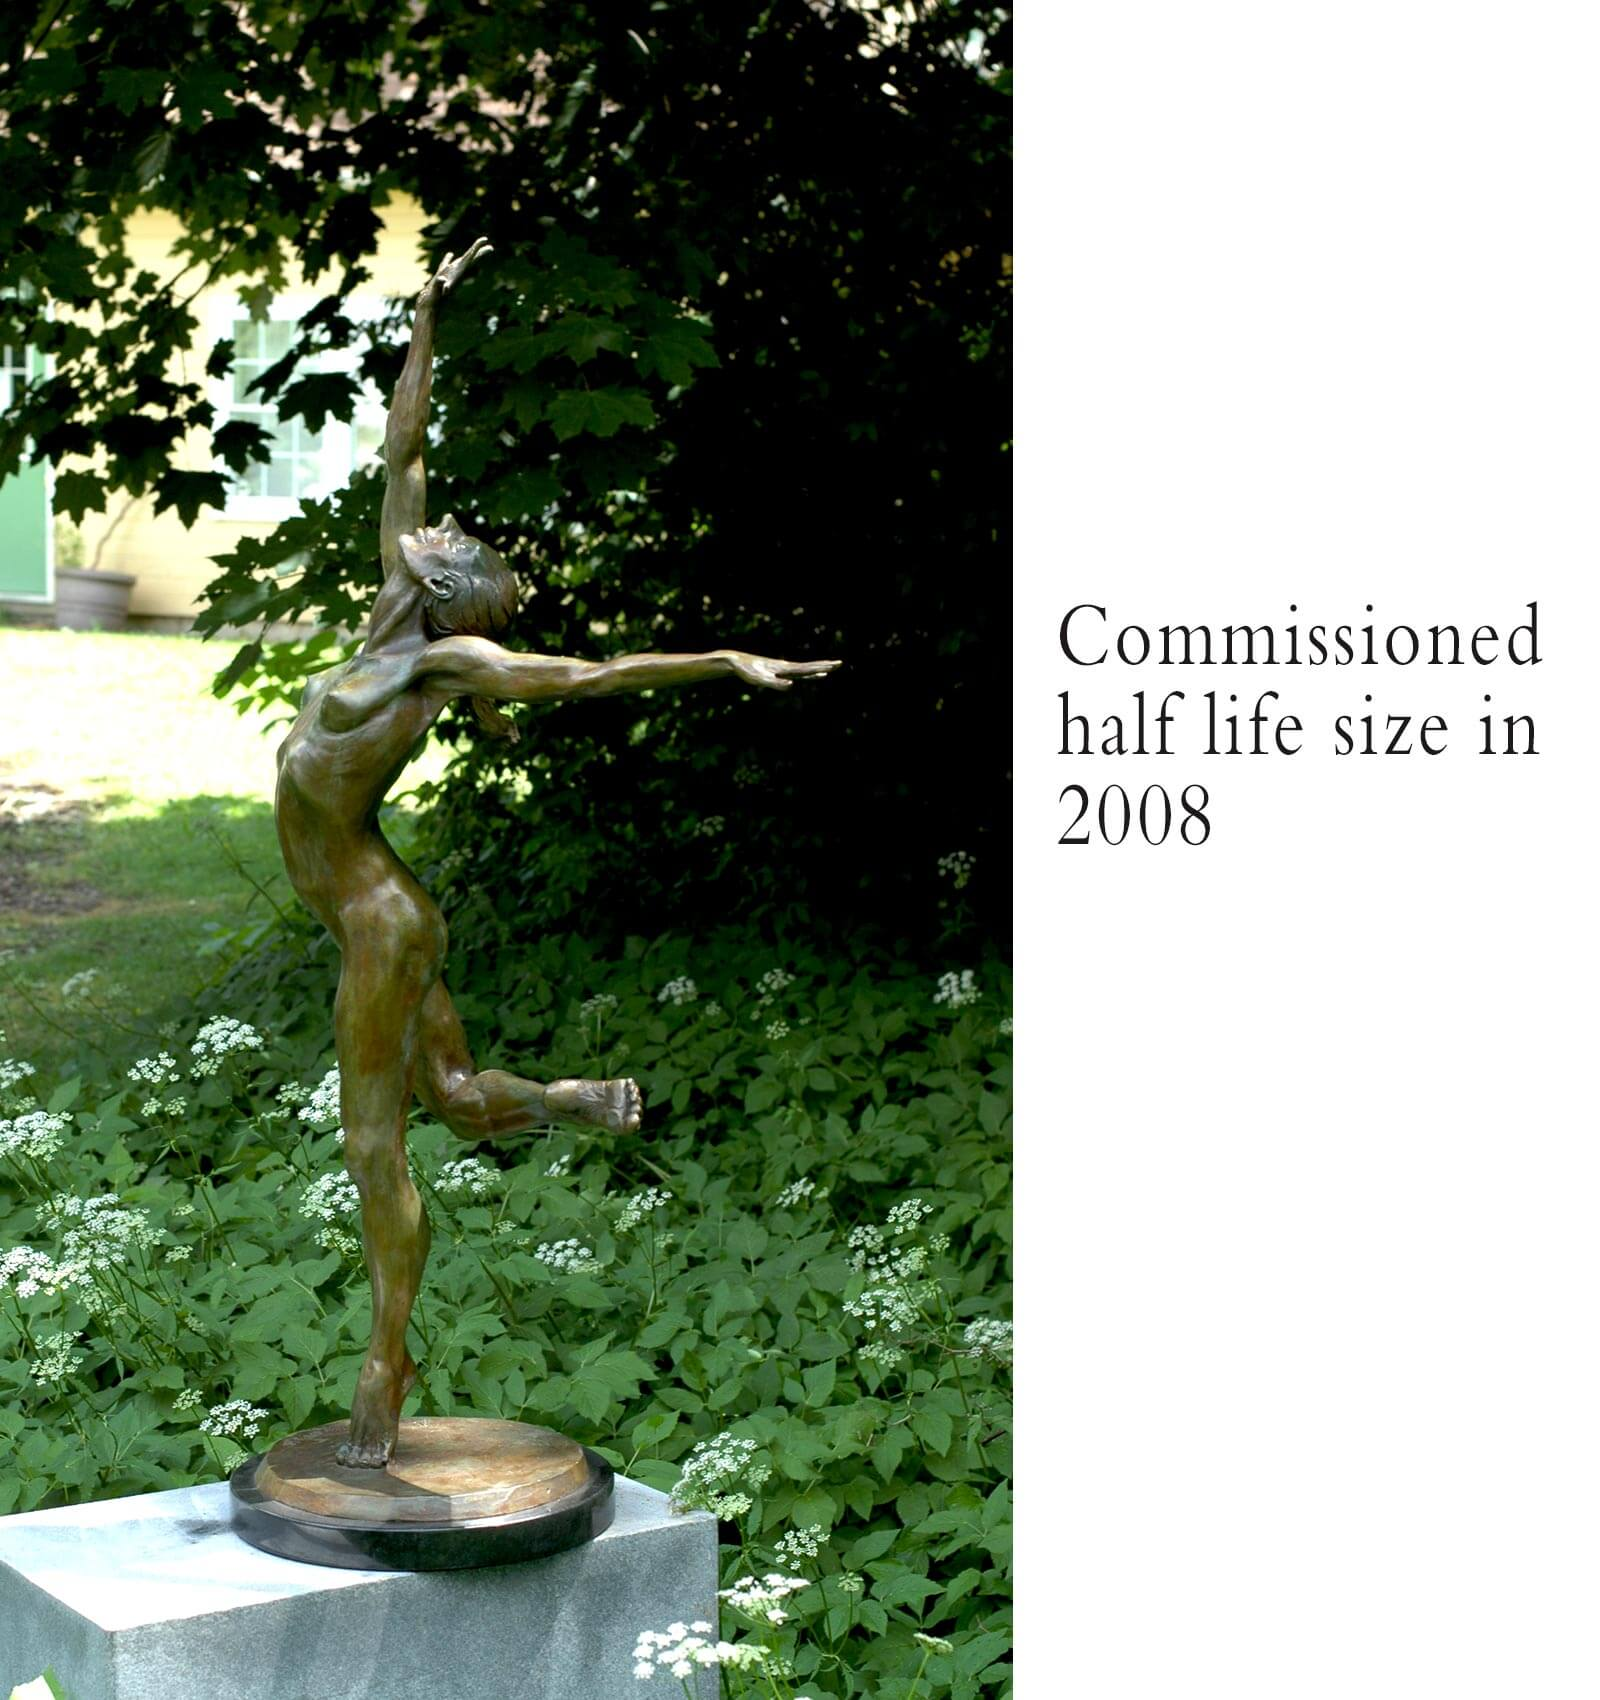 Sparrow bronze female nude dace sculpture by Andrew DeVries commissioned as half life size copyright 2008 available for purchase.